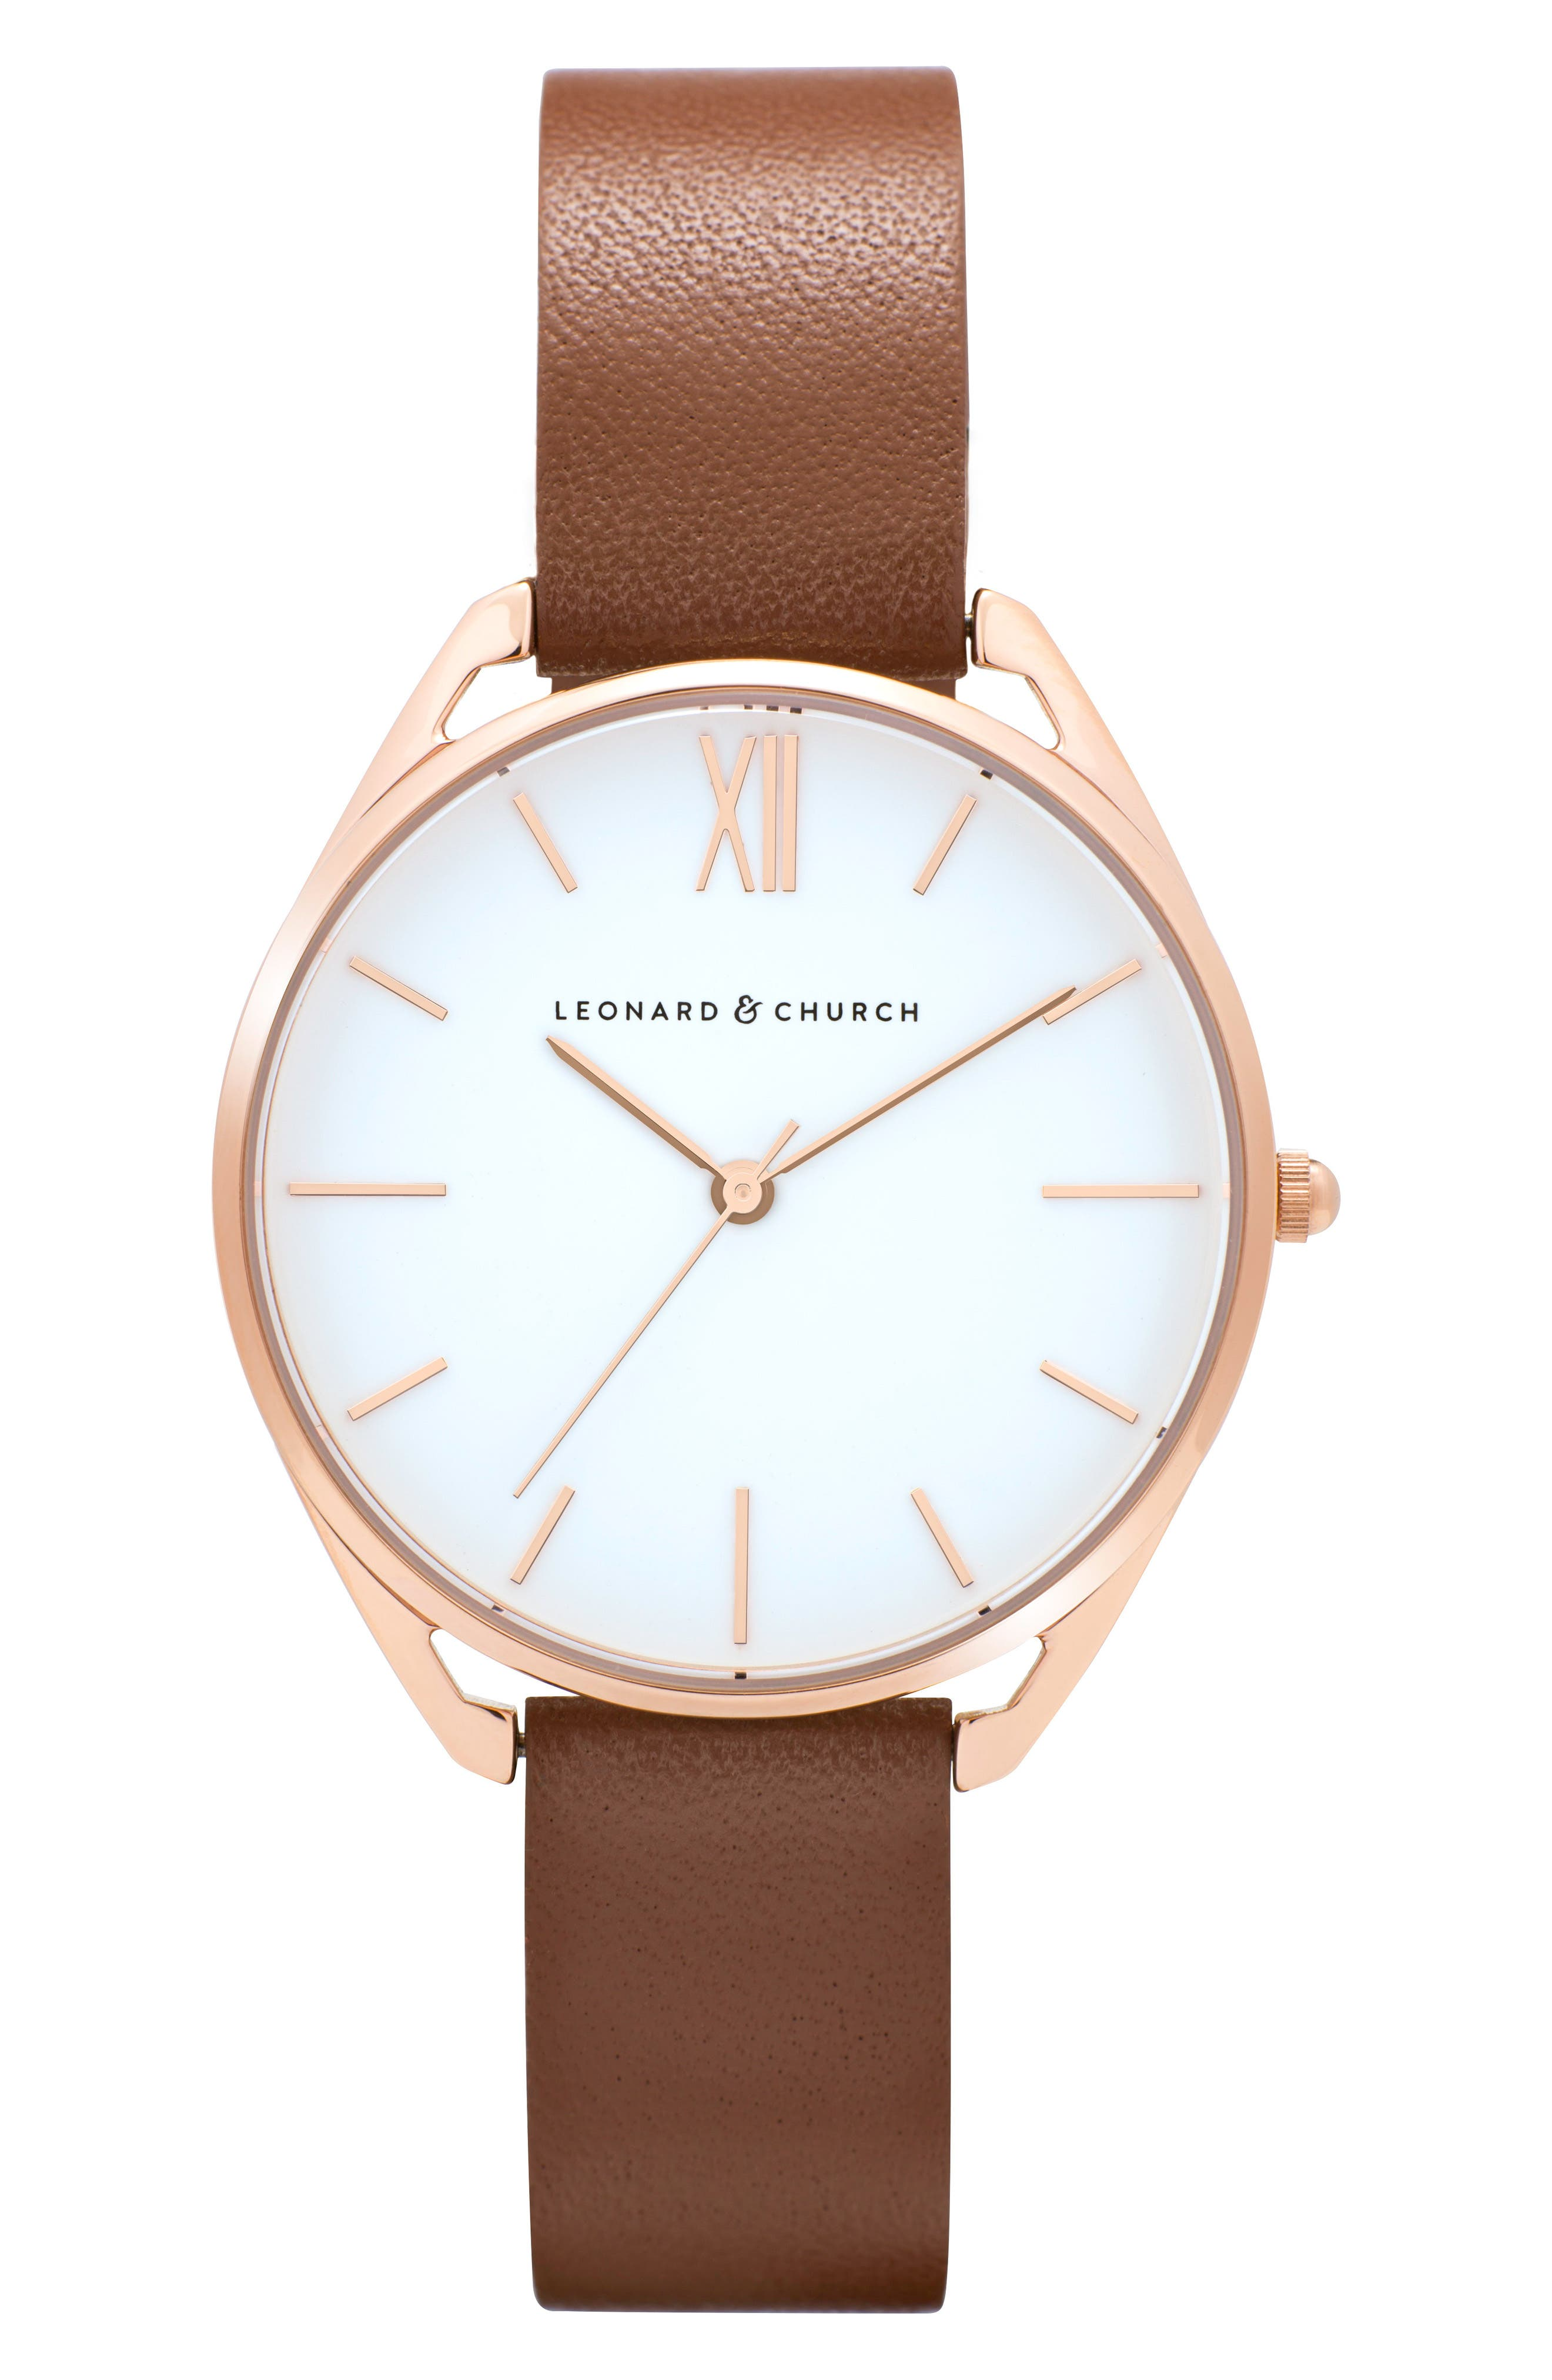 Leonard & Church Chelsea Leather Strap Watch, 34mm,                             Main thumbnail 1, color,                             Brown/ White/ Rose Gold